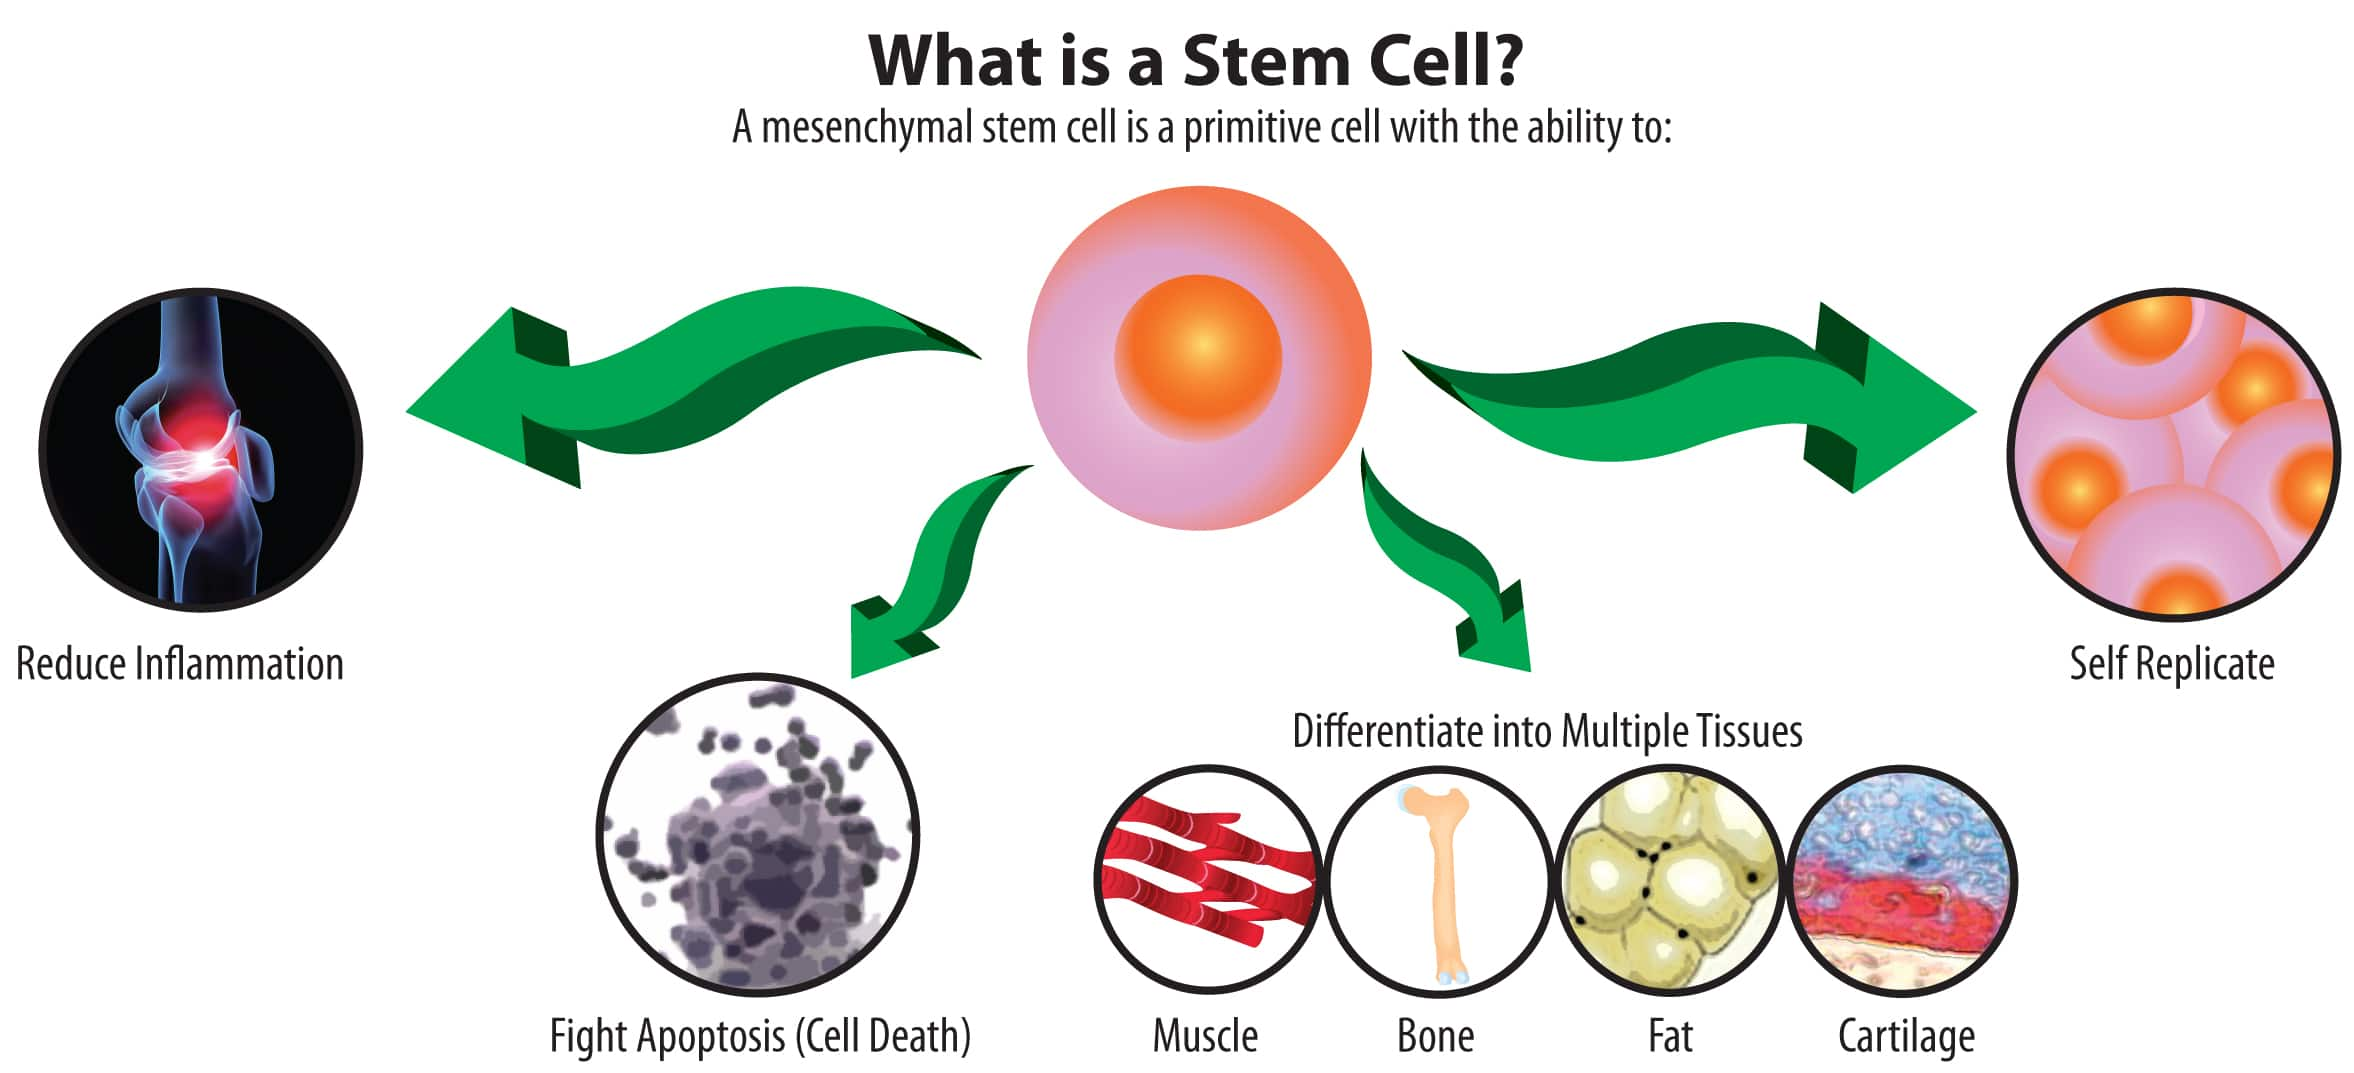 WhatIsAStemCell_ILLUSTRATION